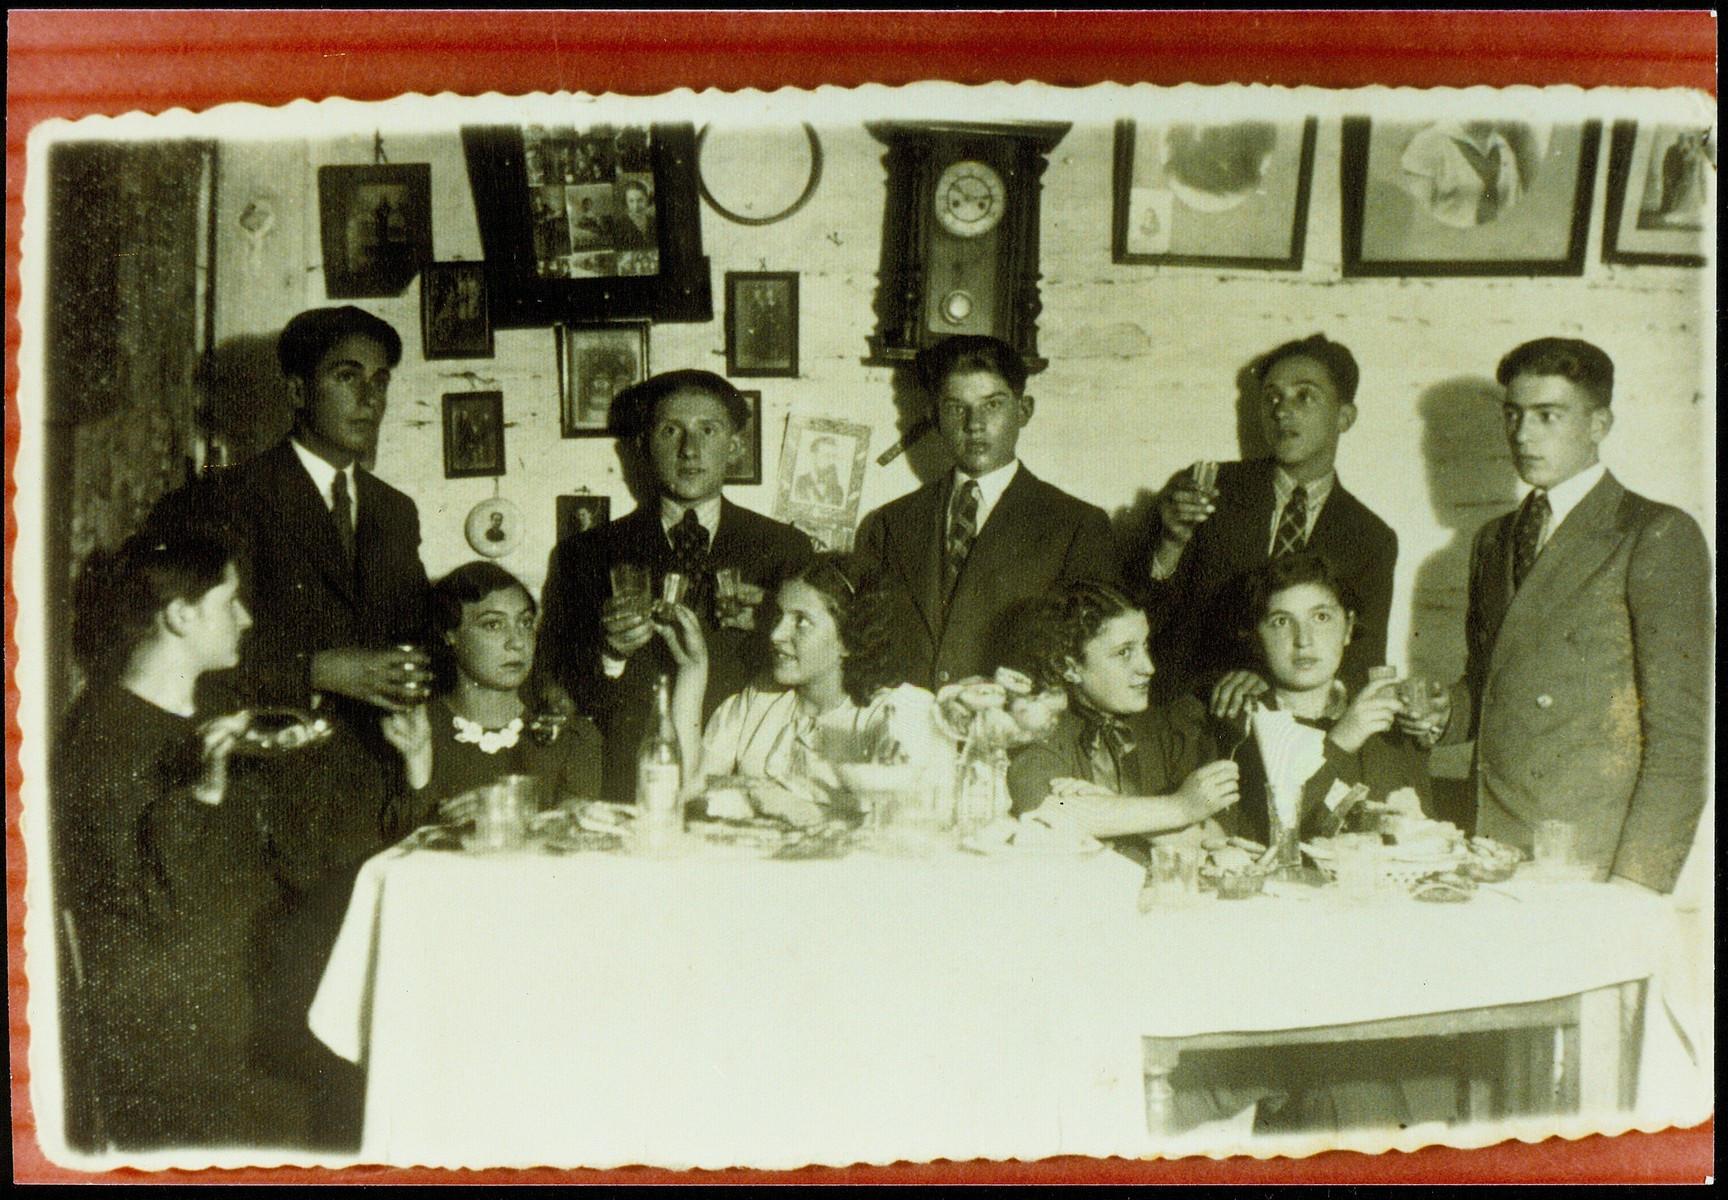 Young people gather around a dining room table at a party.